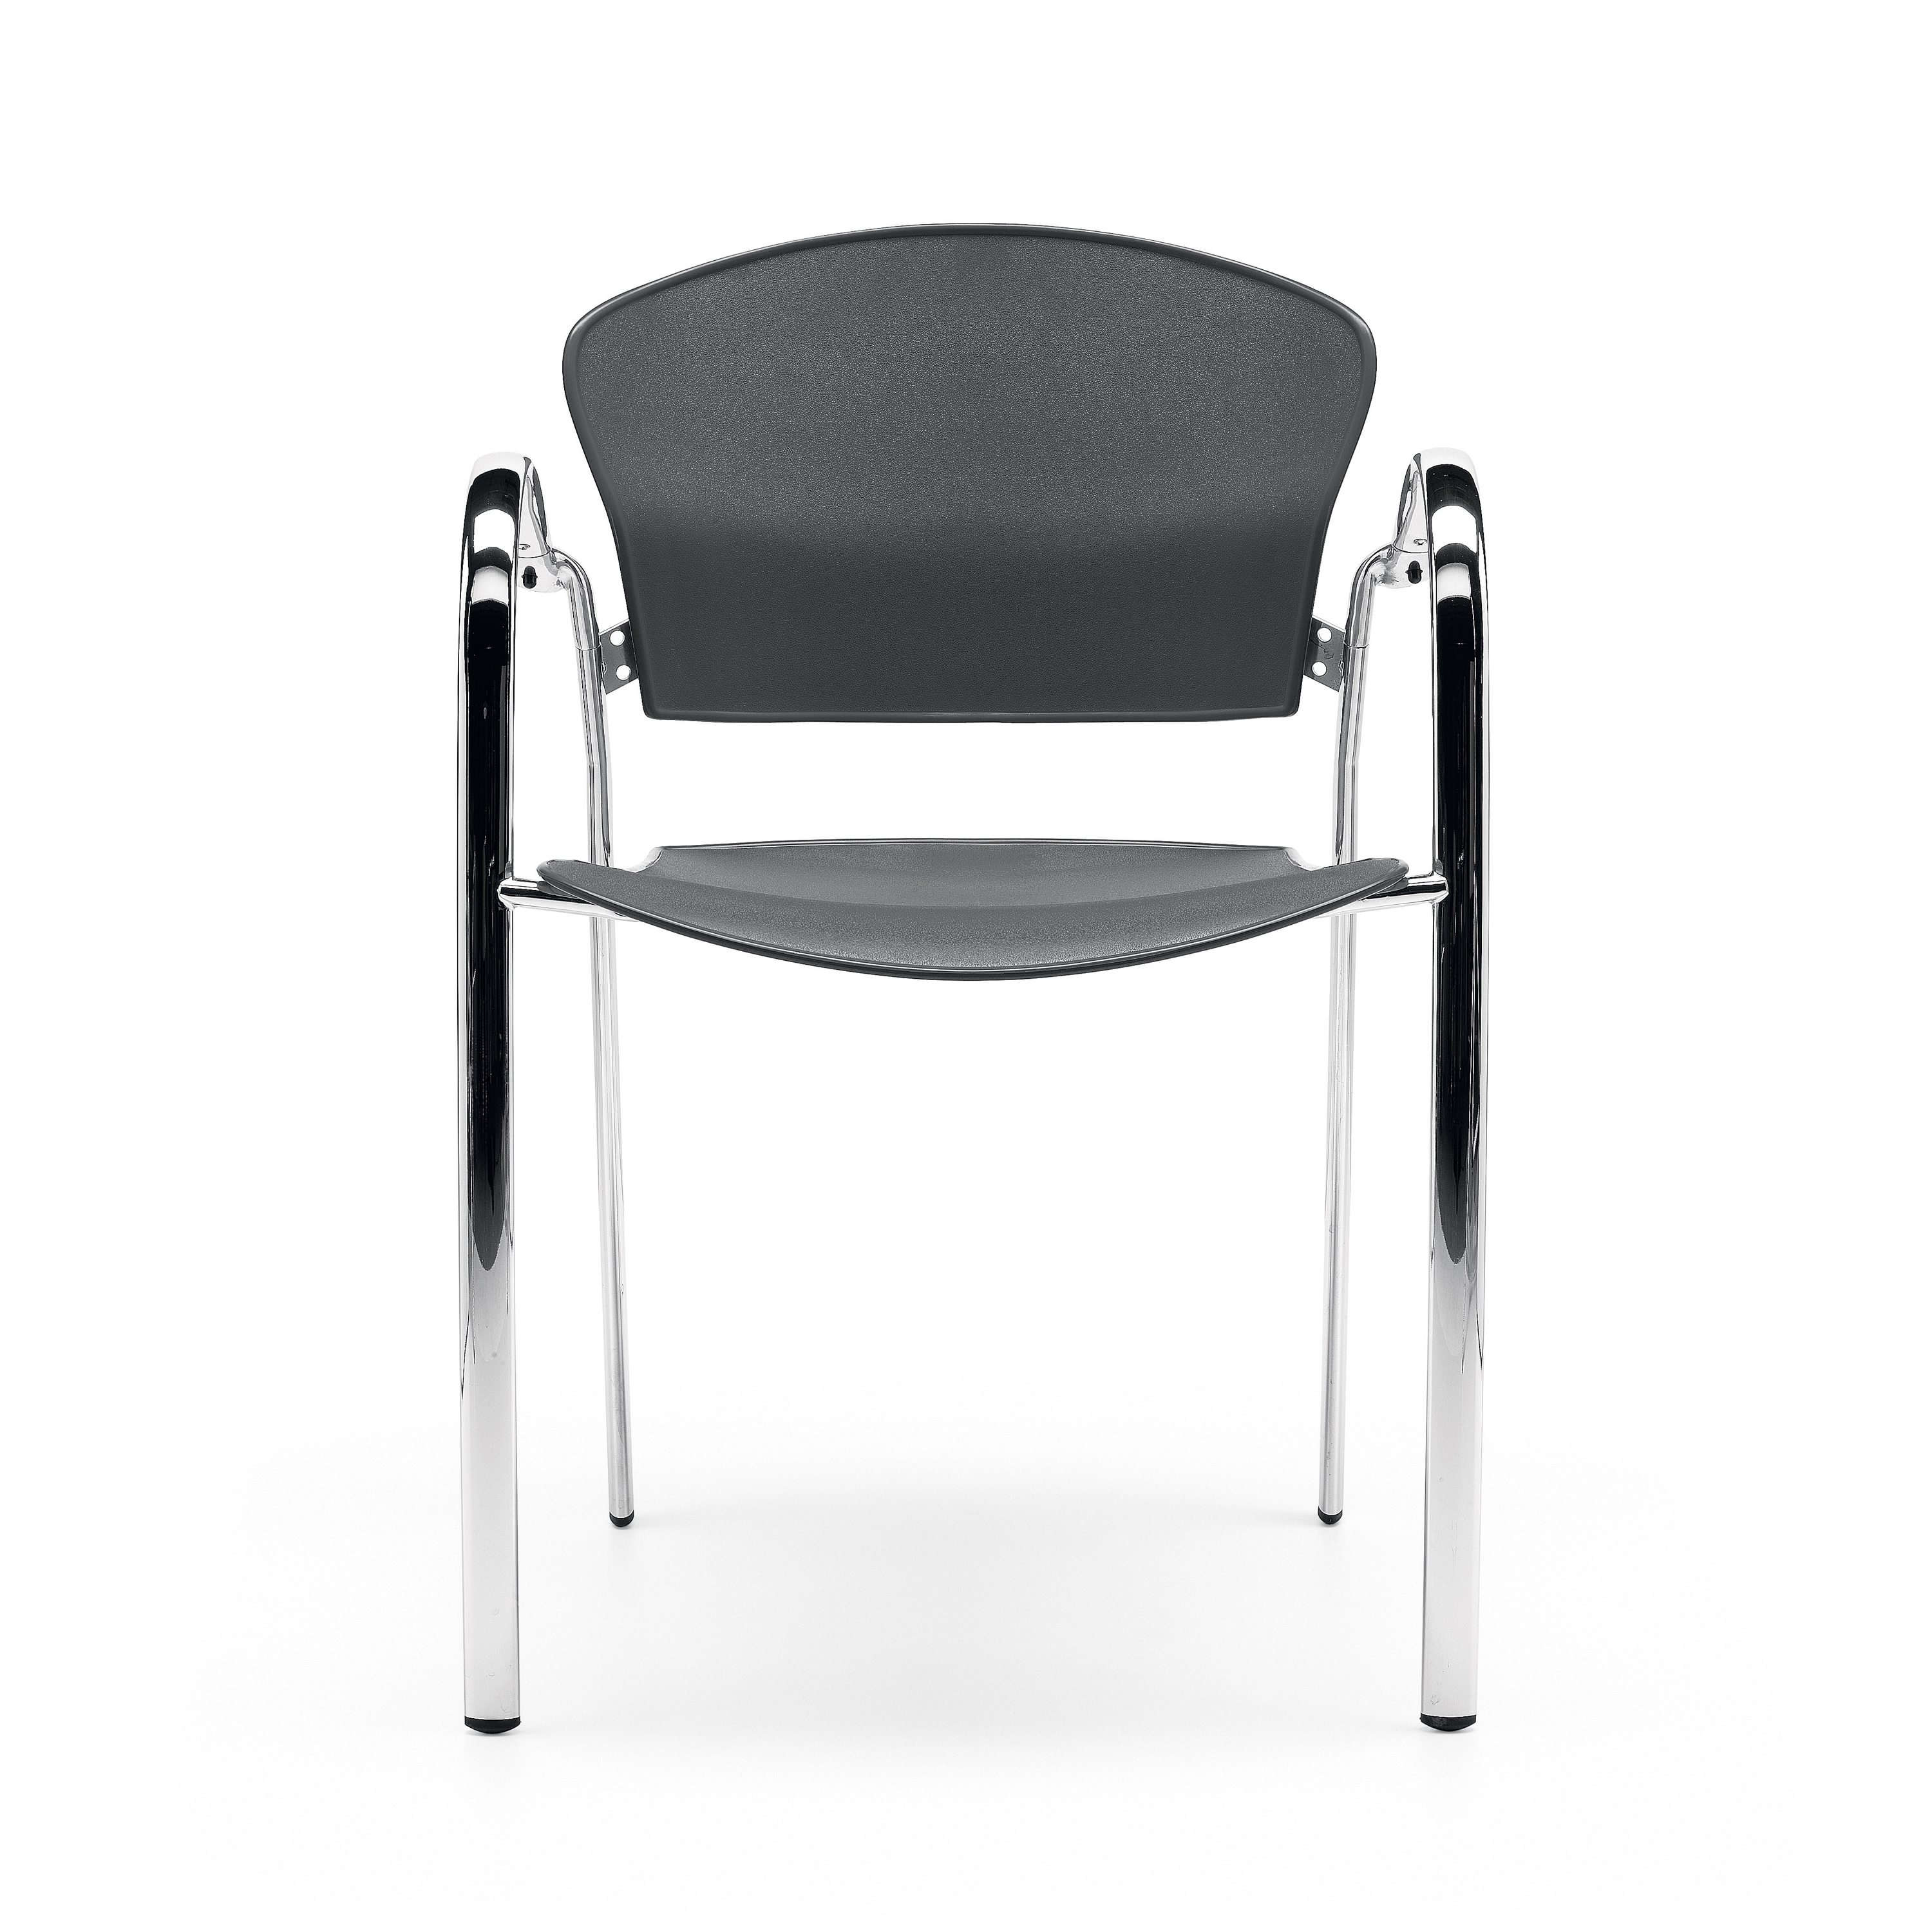 05S_Estel_Comfort&Relax_Office-chair&contract-conference_Cameo